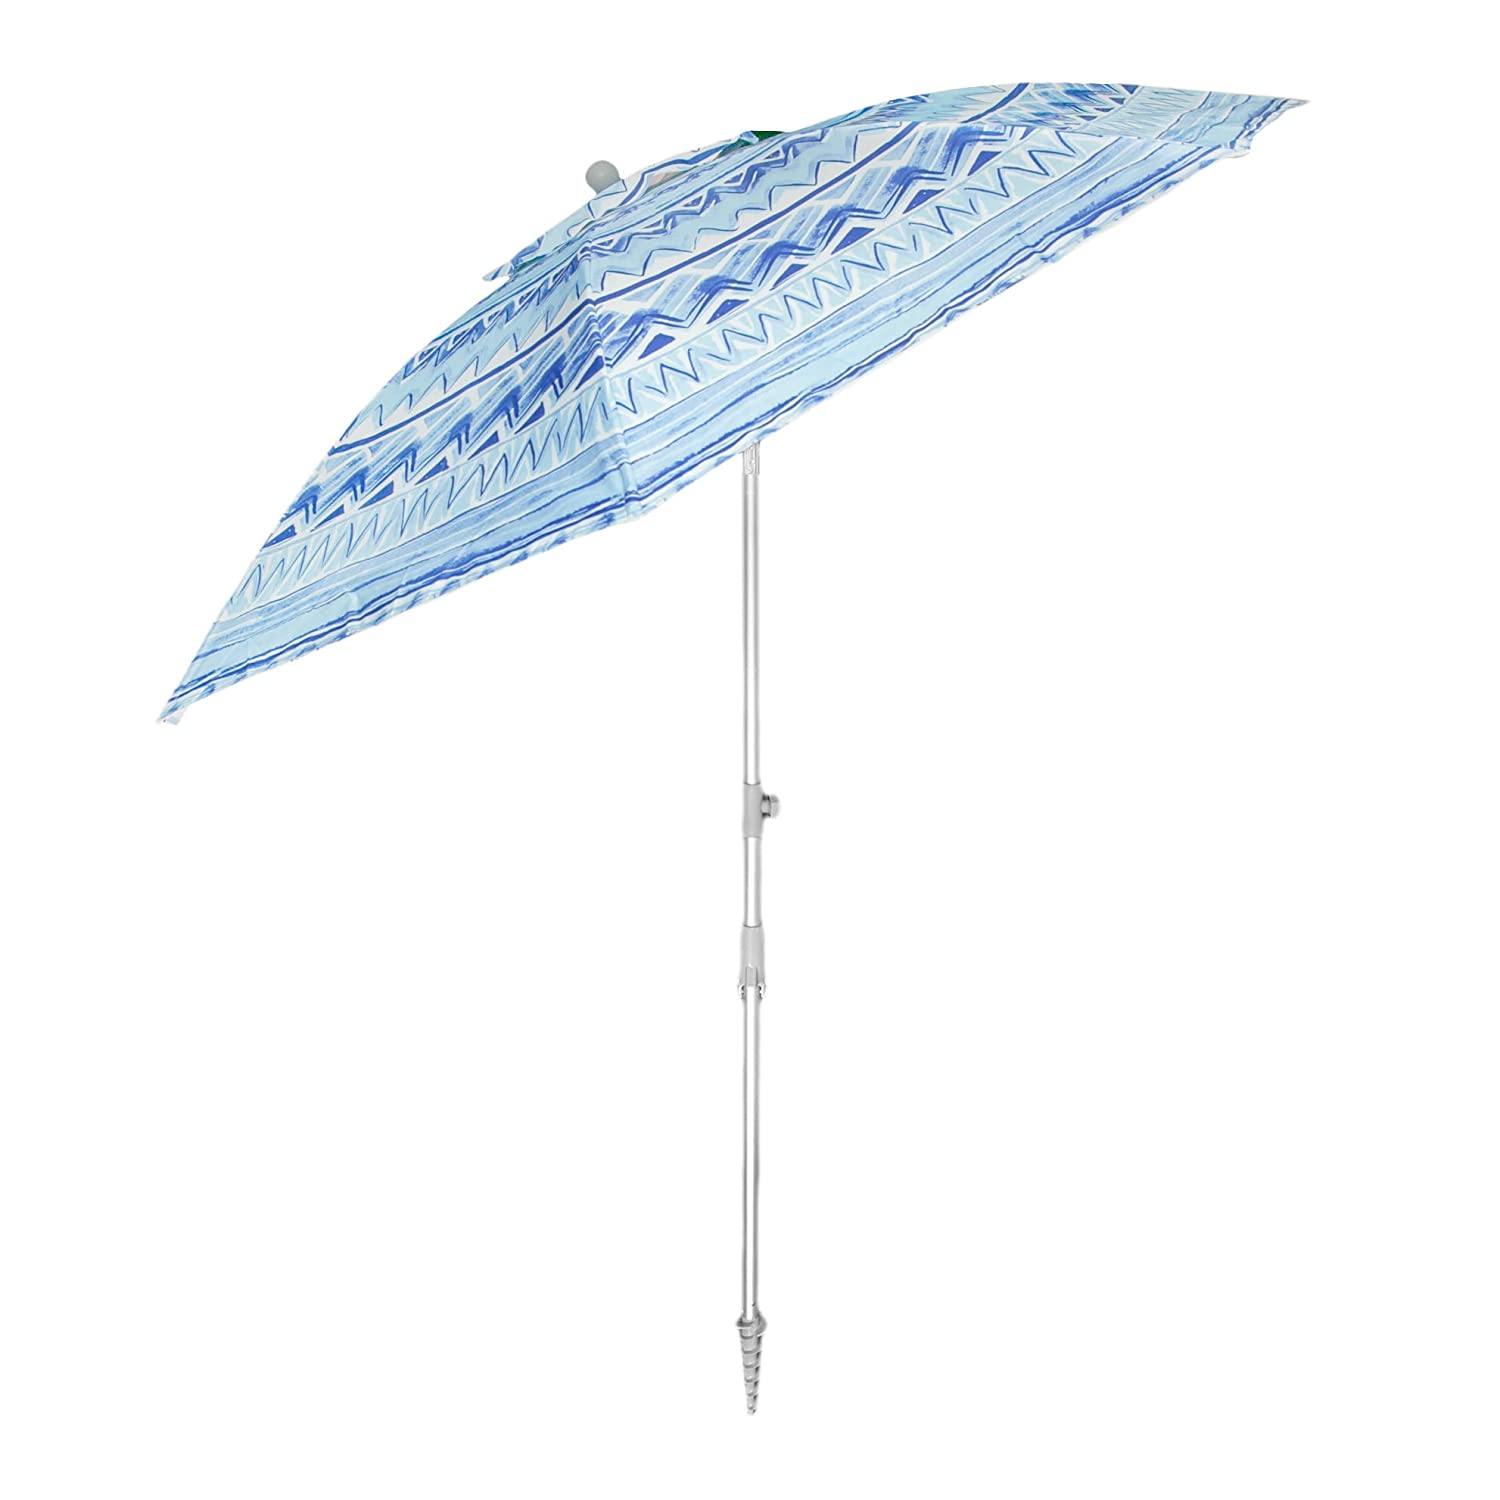 Snail Sand Anchor 7 feet Beach Umbrella with Tilt and Telescoping Pole,Blue White,Green